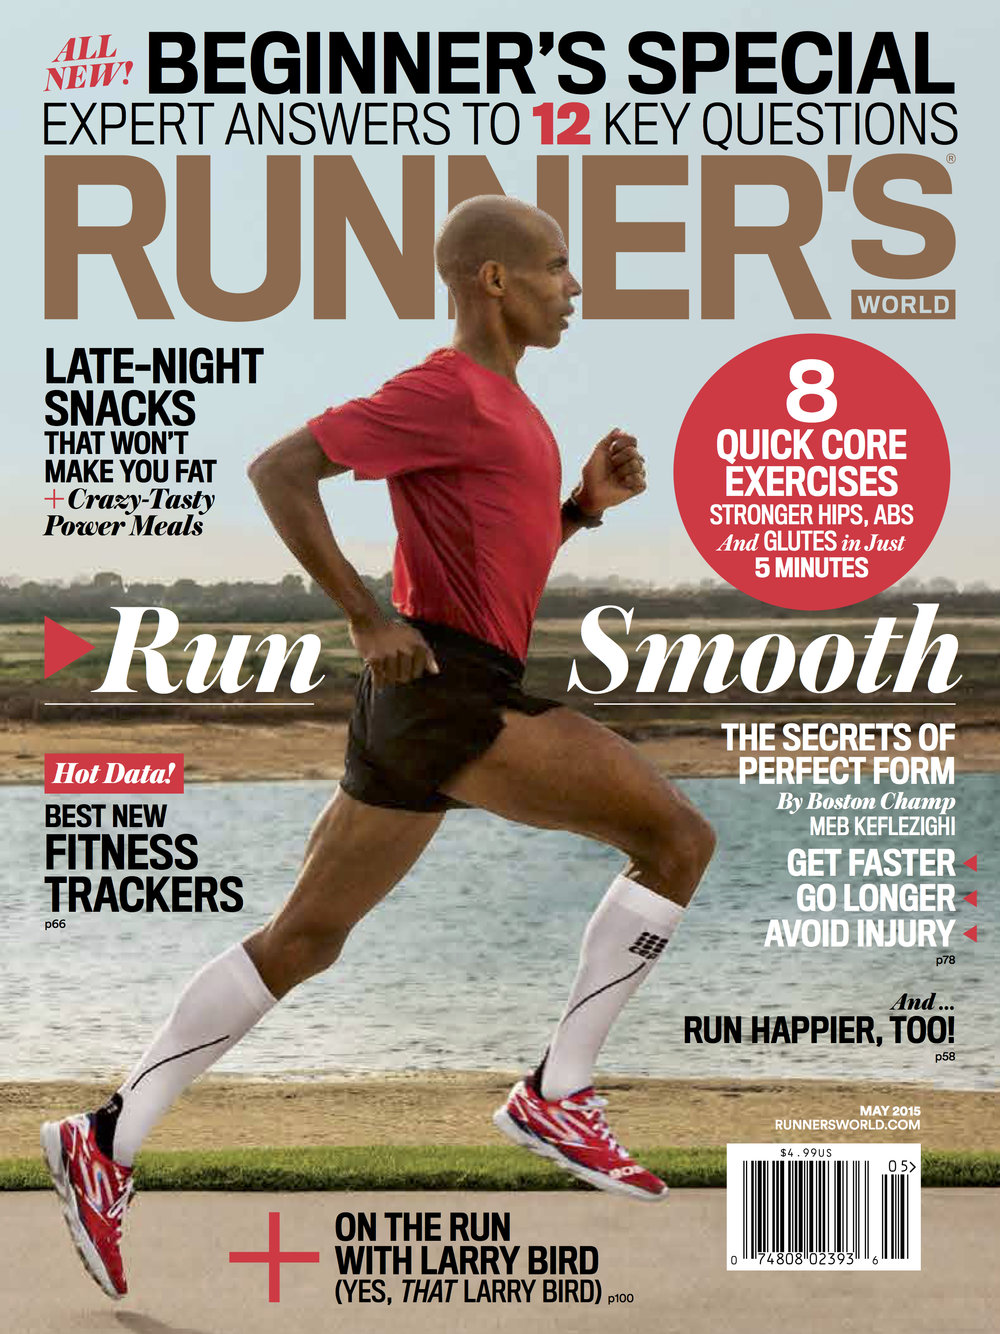 Runner's World   Meb Keflezighi